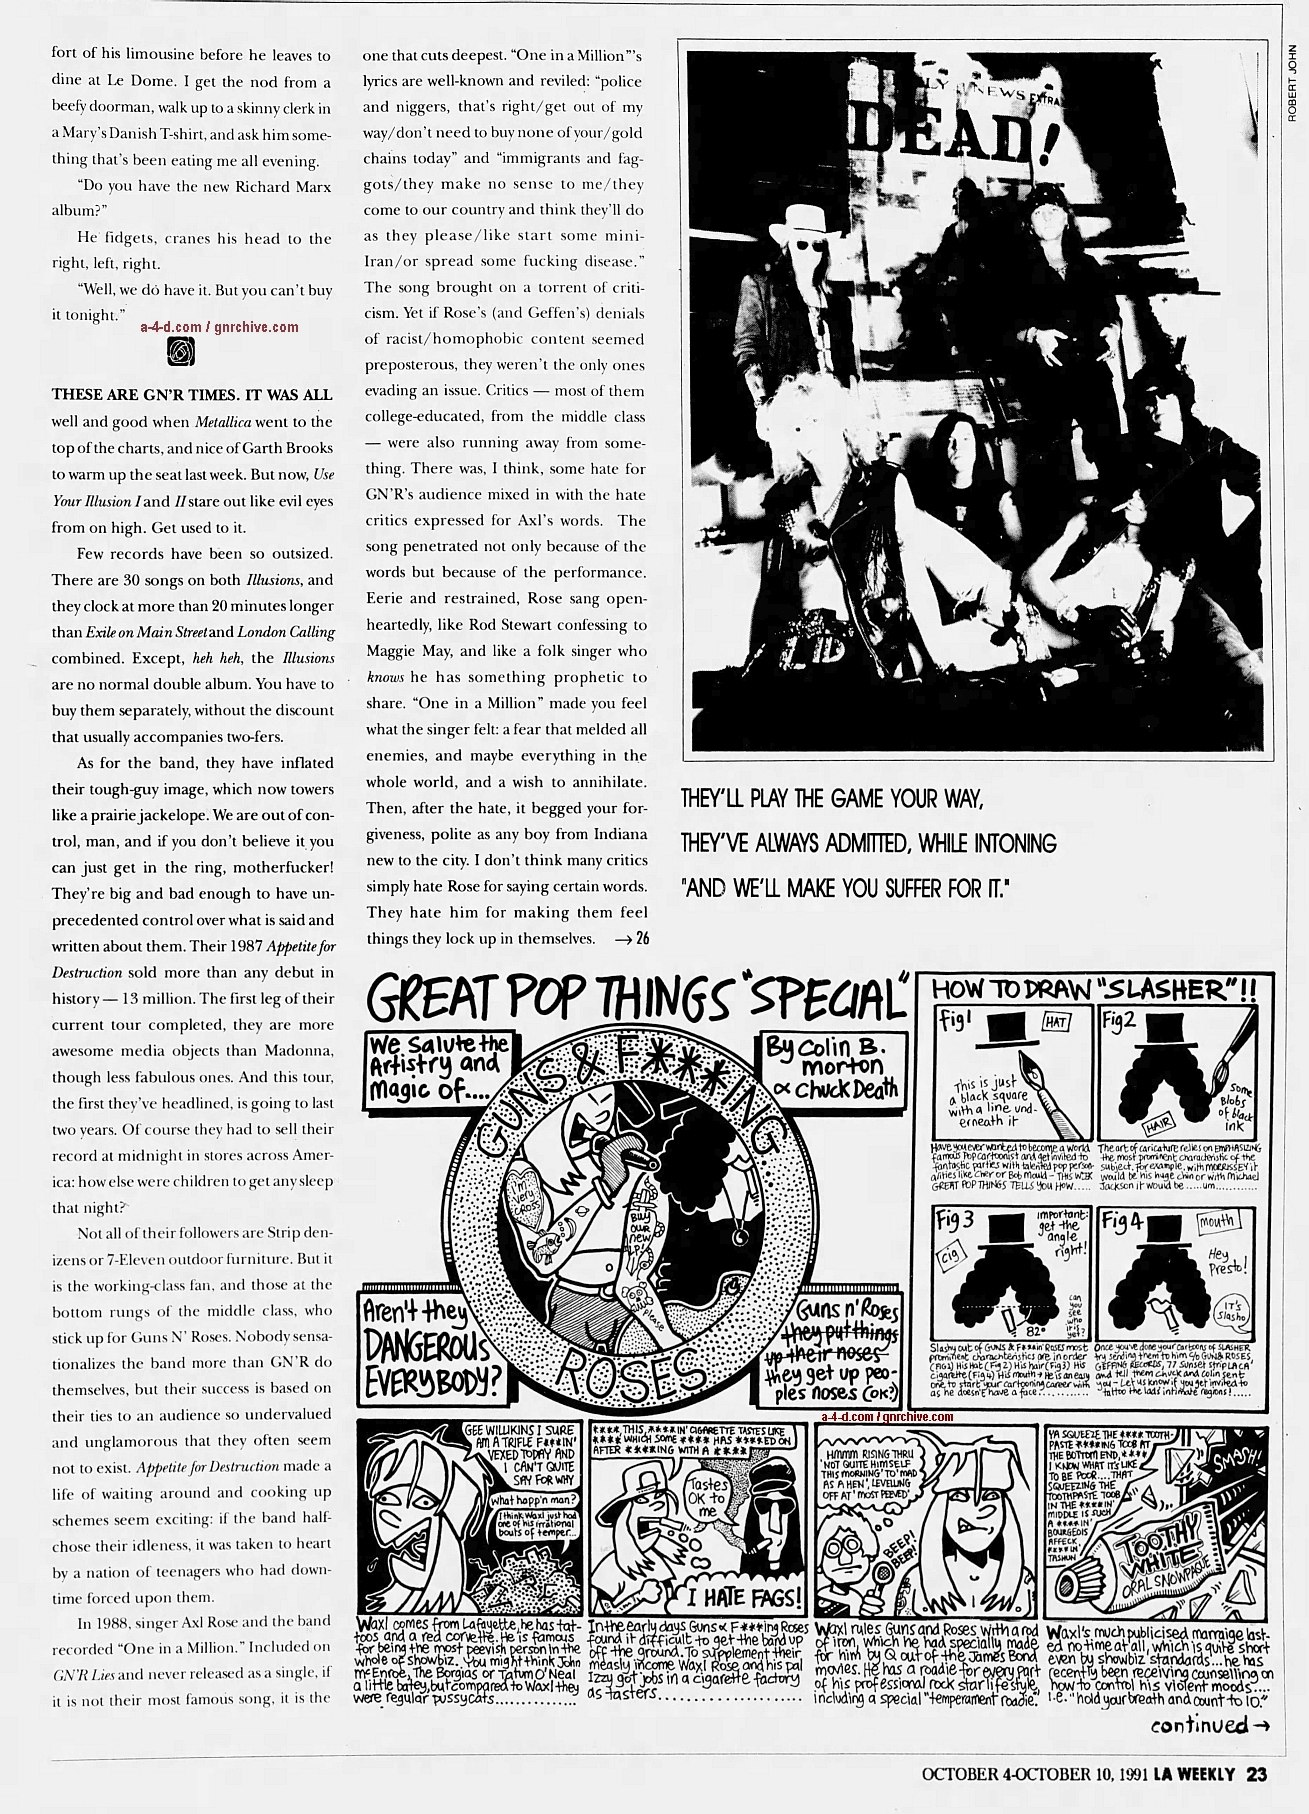 1991.10.04 - L.A. Weekly - Guns N' Roses: Up From Nowhere 1991_114